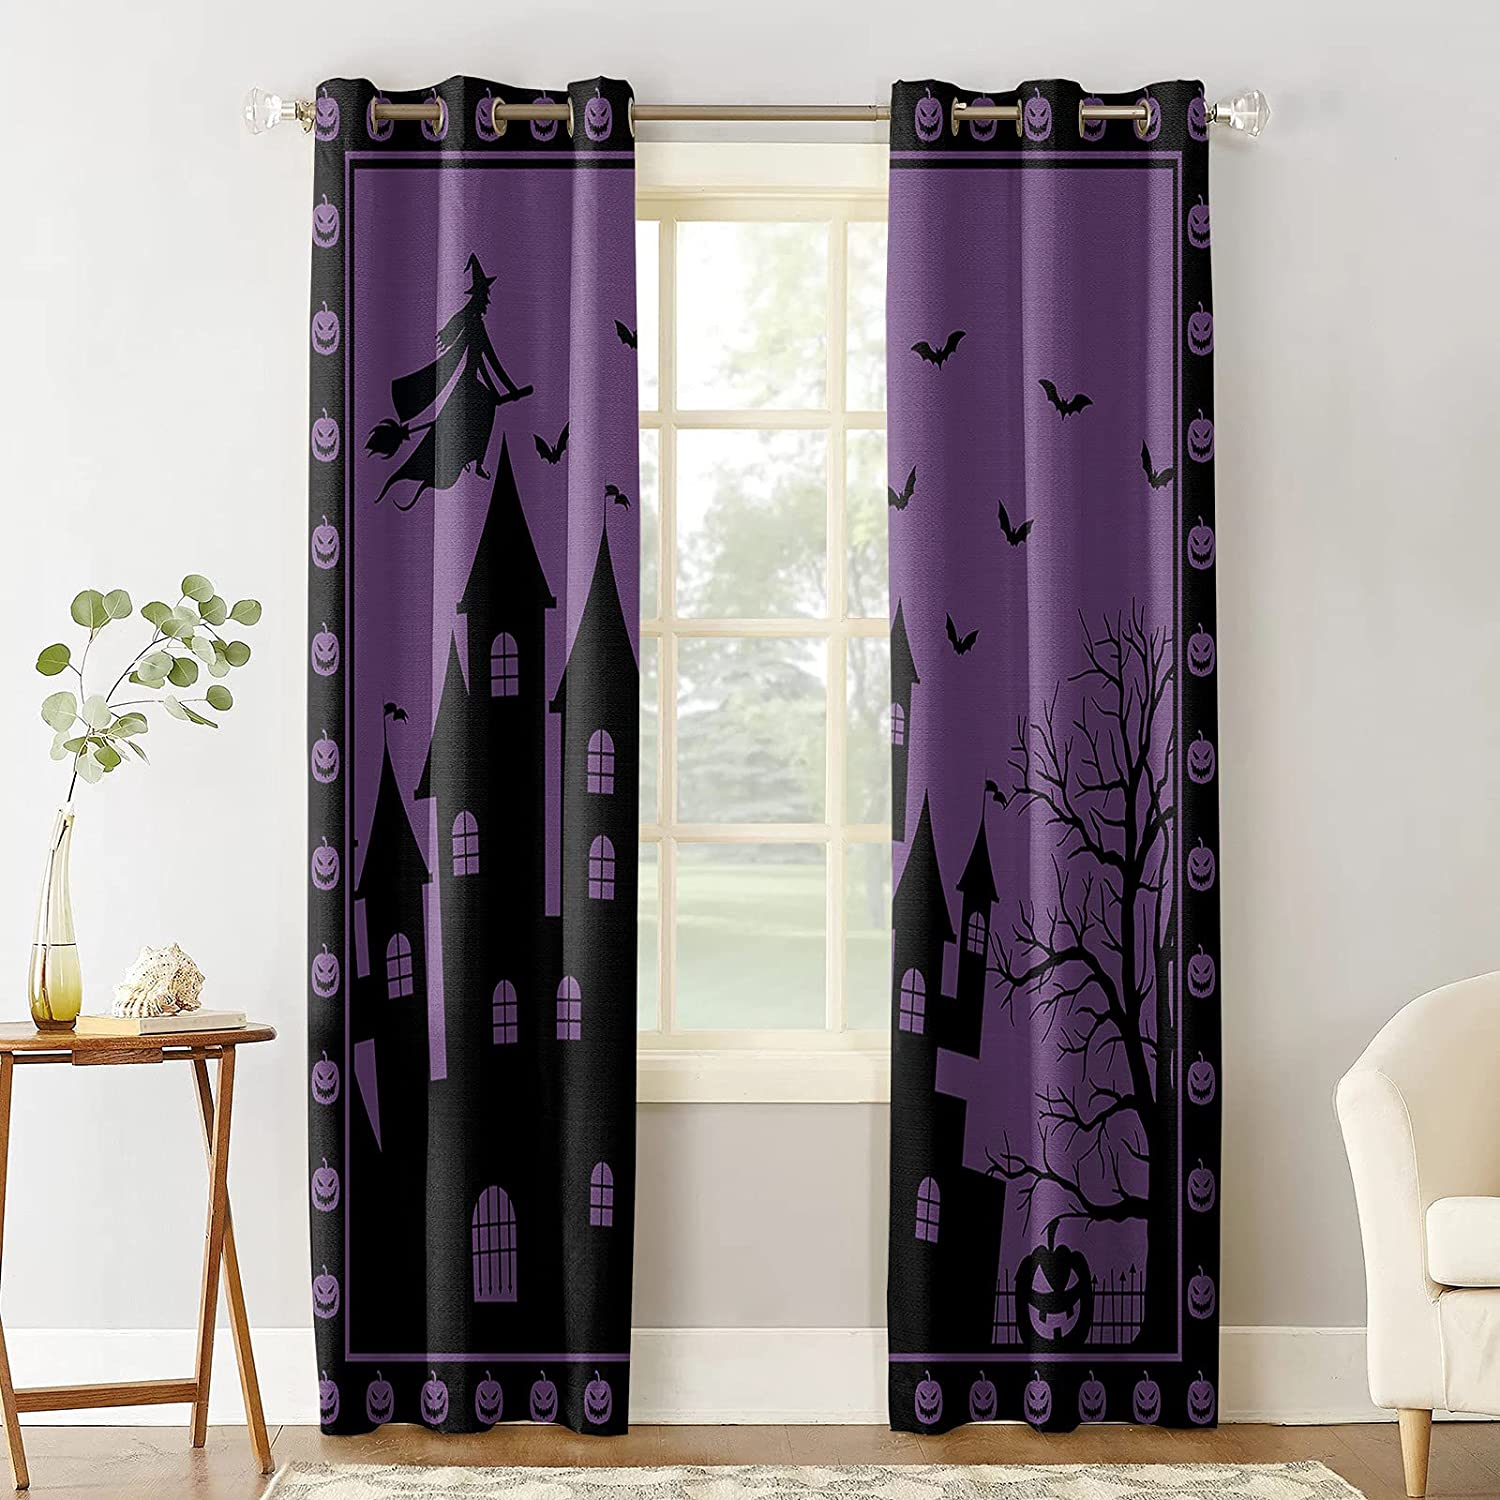 Curtains 42 x 84 inch Special store price for a limited time Dar Bedroom Living Blackout Room